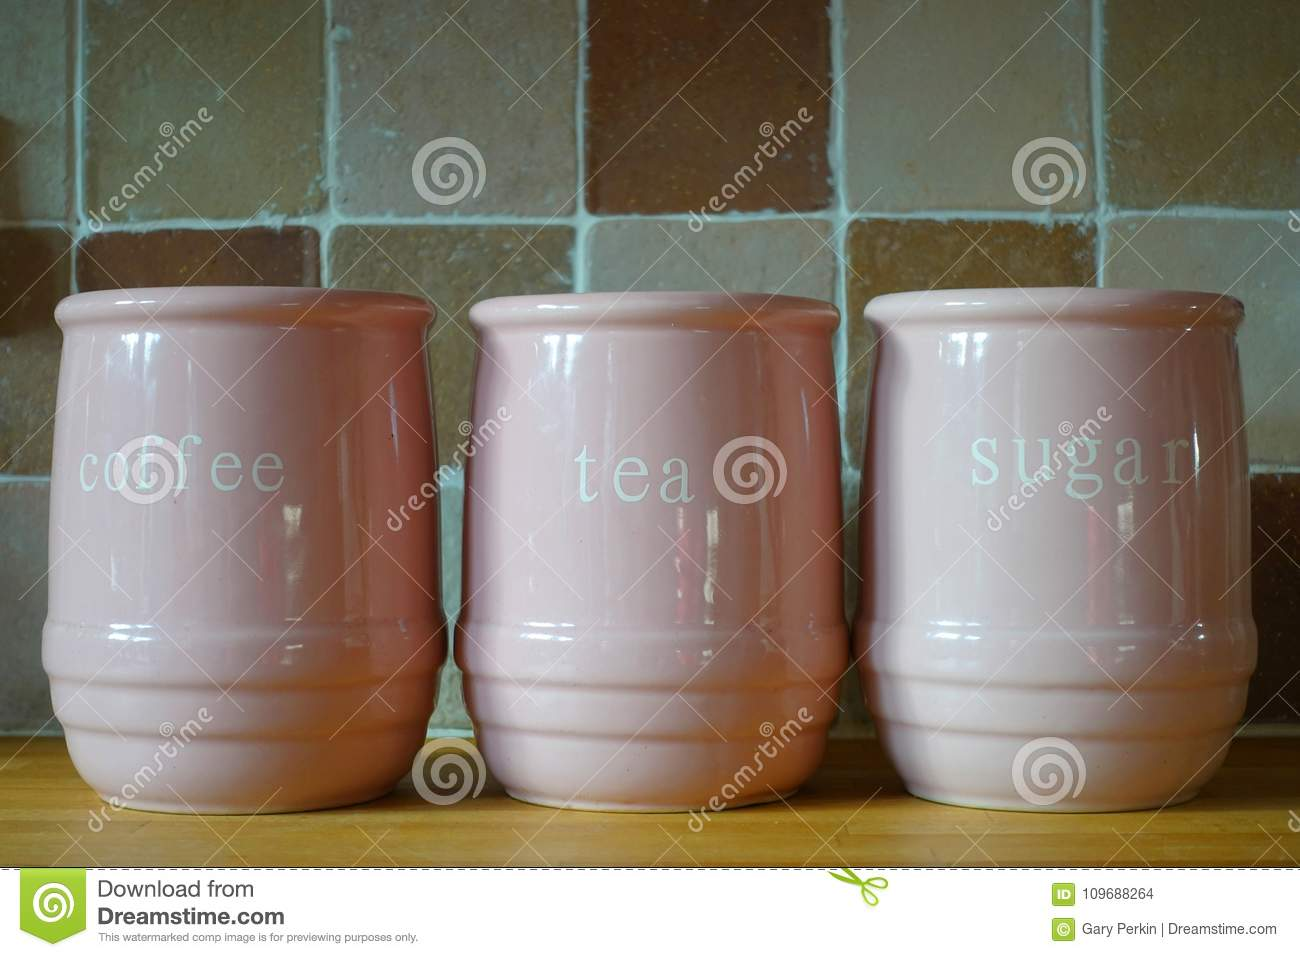 Three pink jugs on a wooden kitchen work surface, with the words